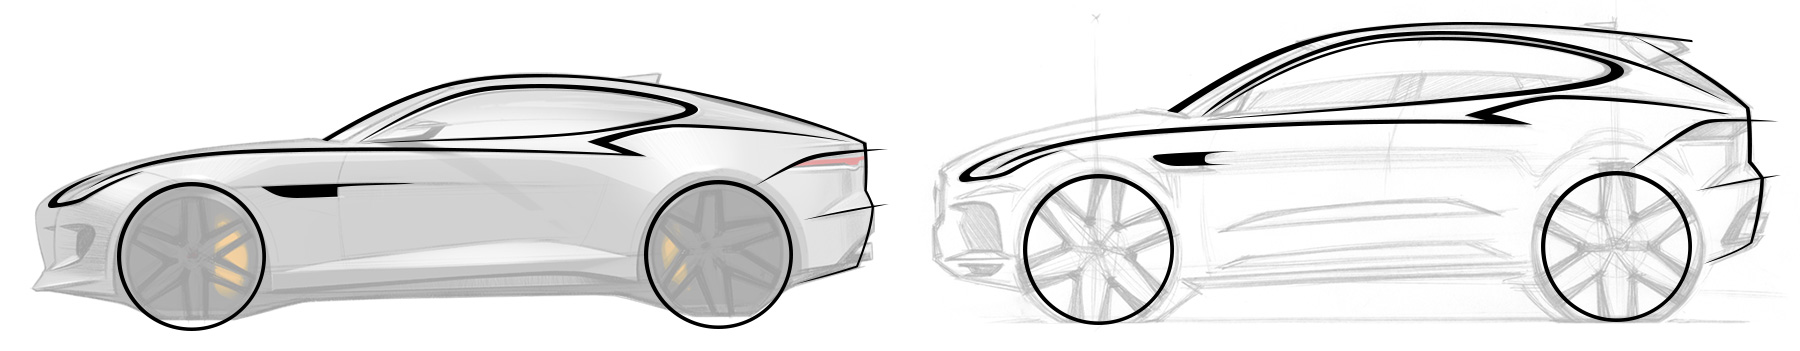 Miroslav's Sketch Revealing the design DNA shared between the Jaguar F-Type and the Jaguar E-pace